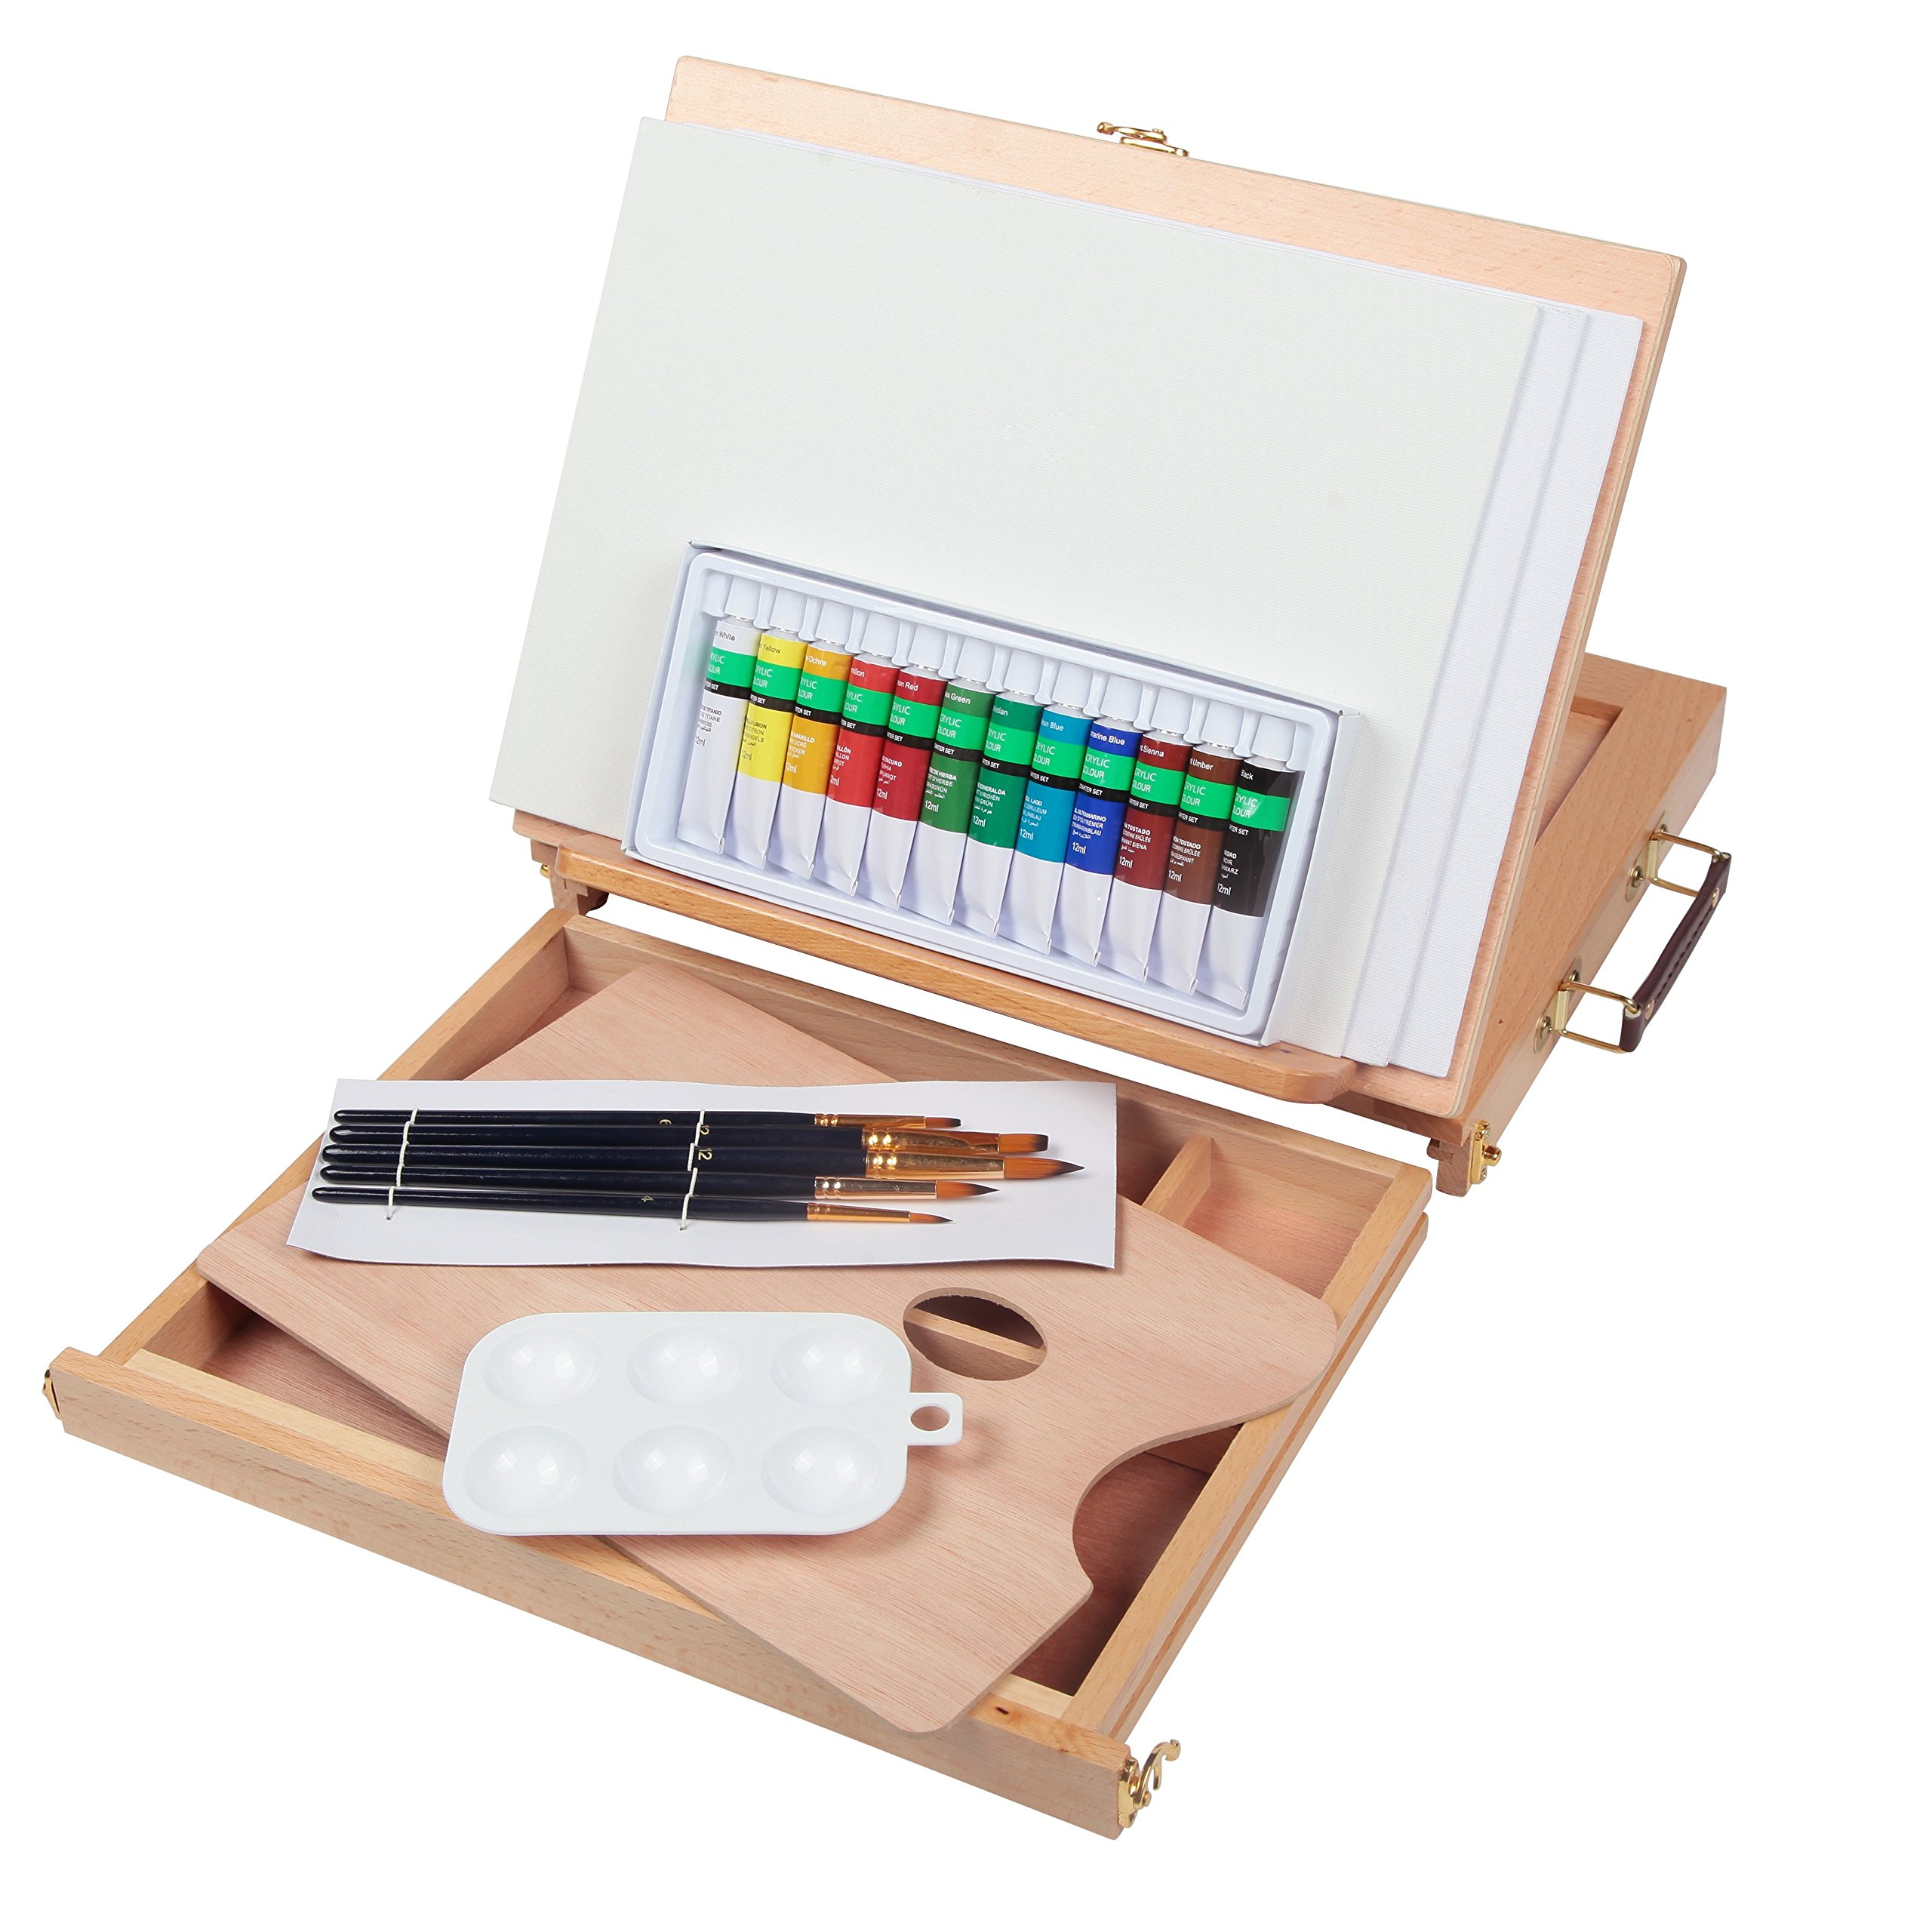 Falling in Art Portable Beechwood Painting Table Sketch Easel - 12 Tube Acrylic Colors, 12''x9'' Canvas Panels, 5 Nylon Brushes, 6-Well Plastic Palette and Extra Wooden Palette